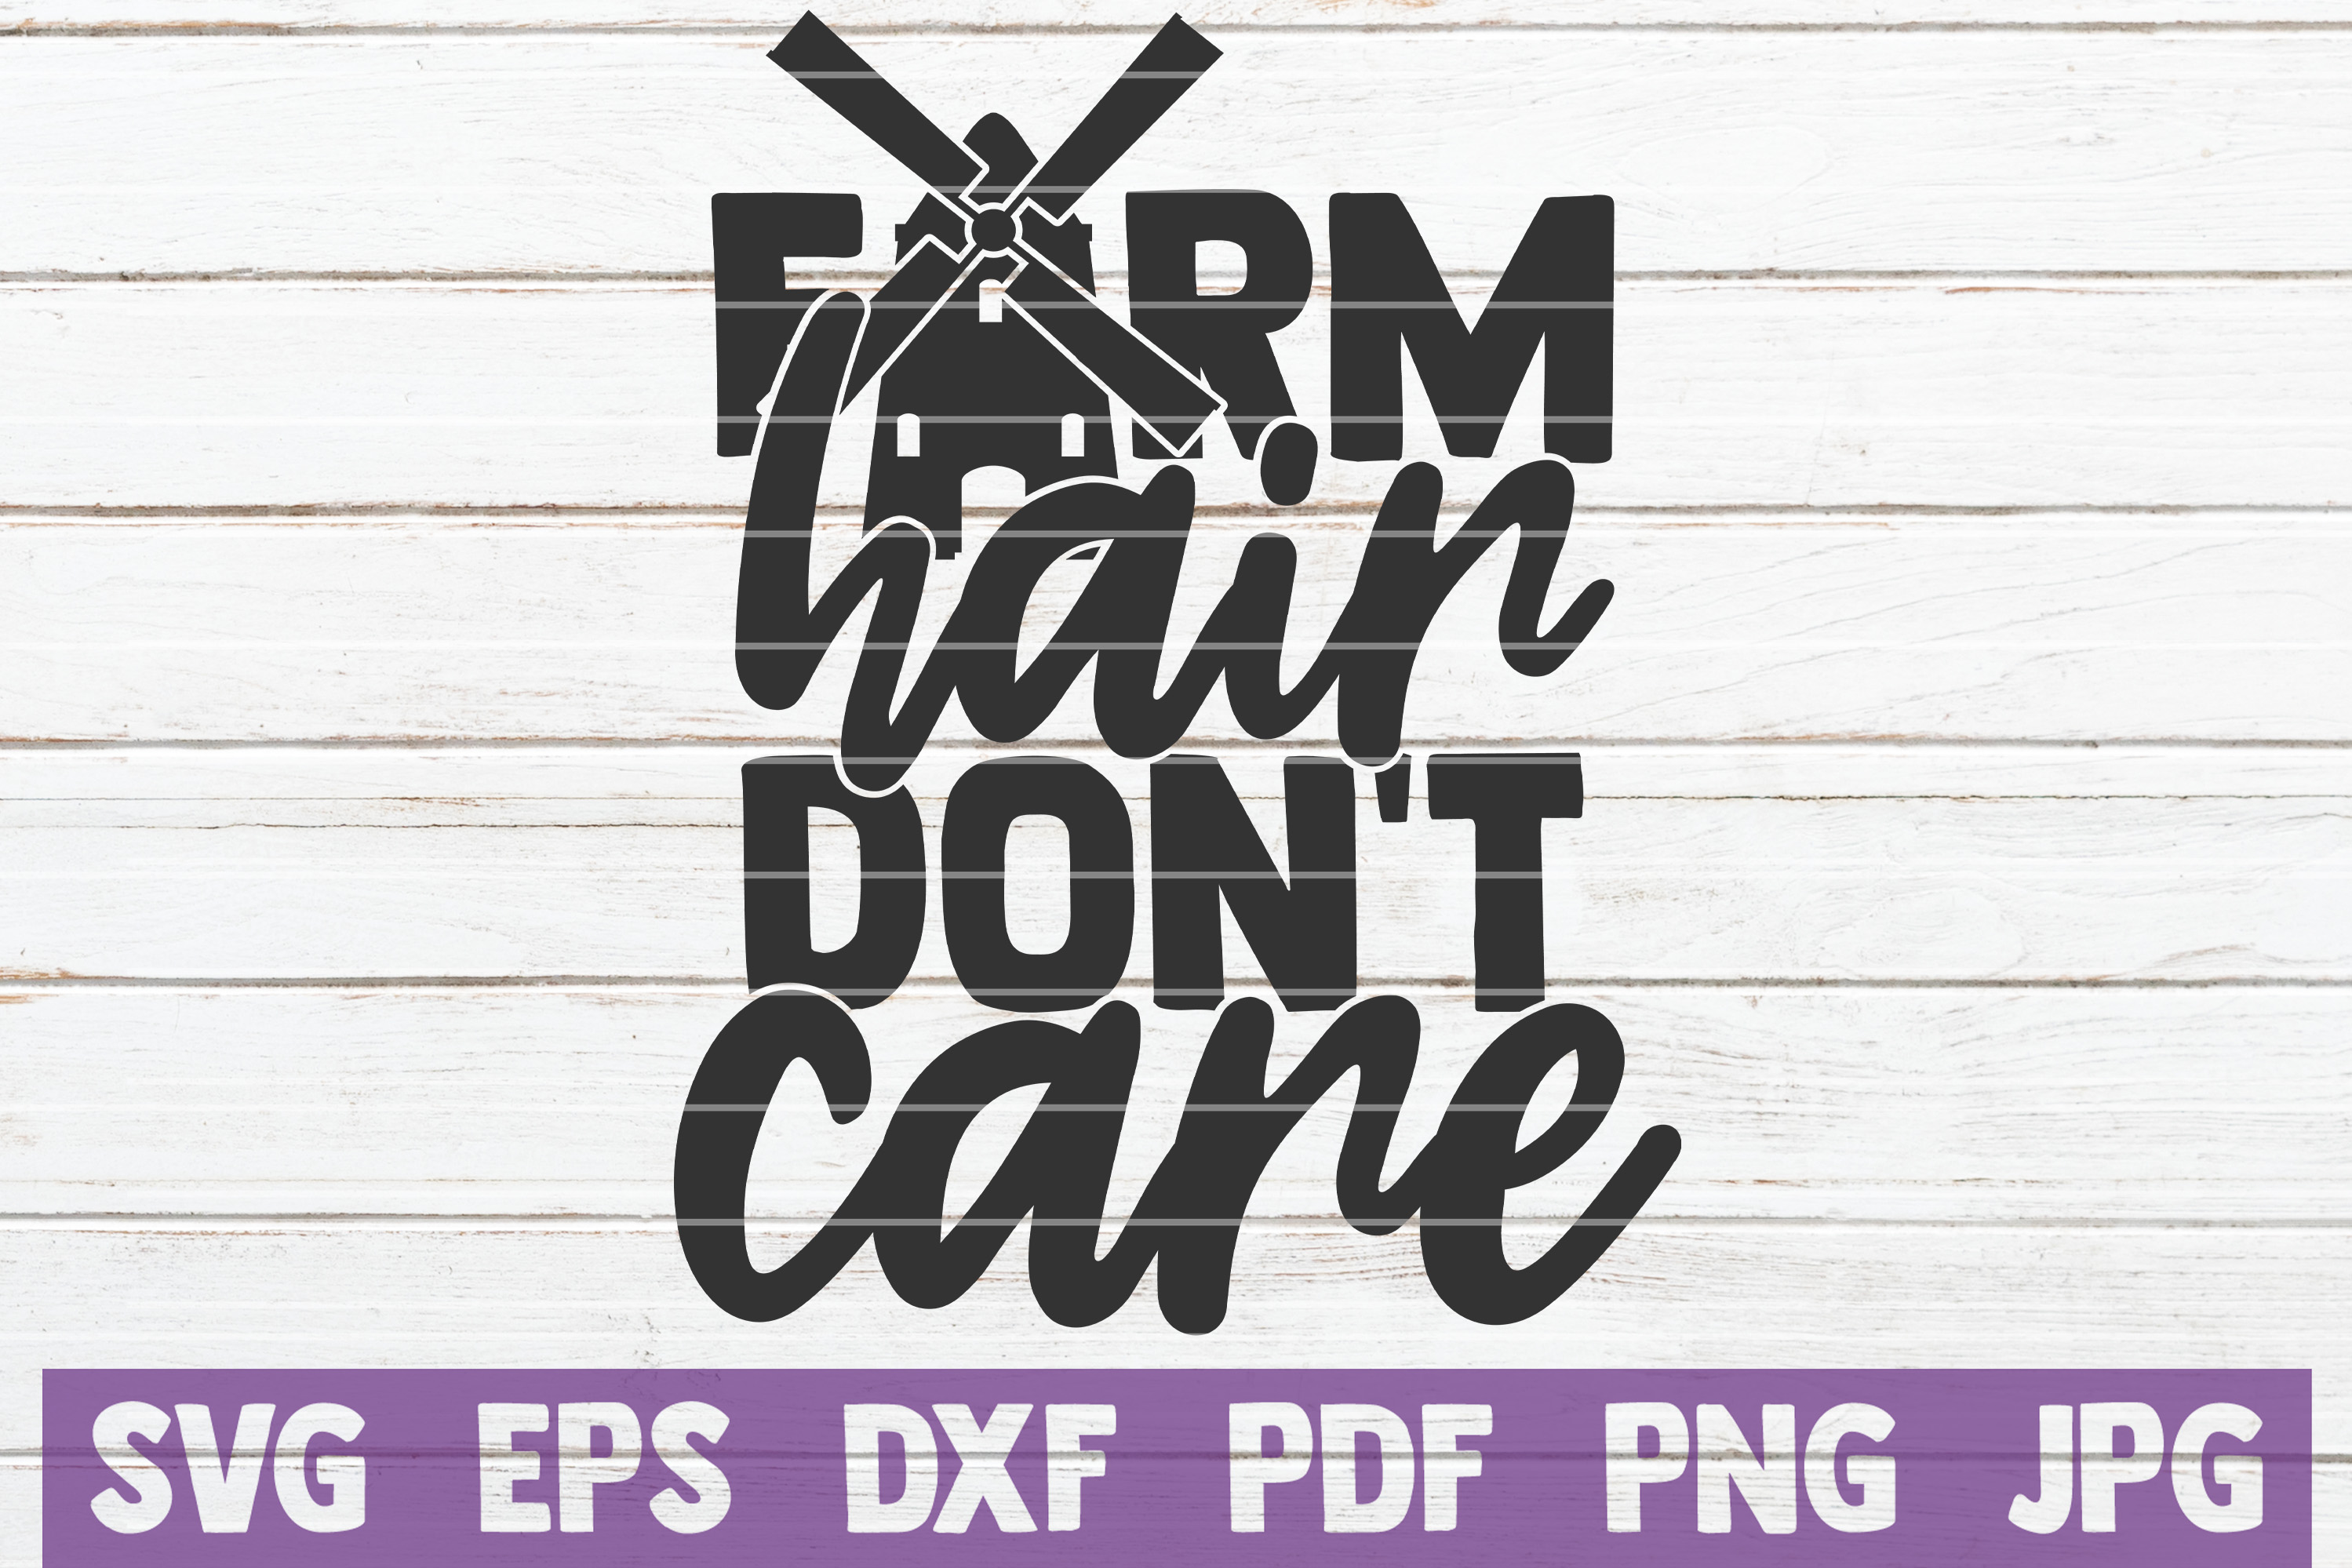 Download Free Farm Hair Don T Care Svg Cut File Graphic By Mintymarshmallows for Cricut Explore, Silhouette and other cutting machines.